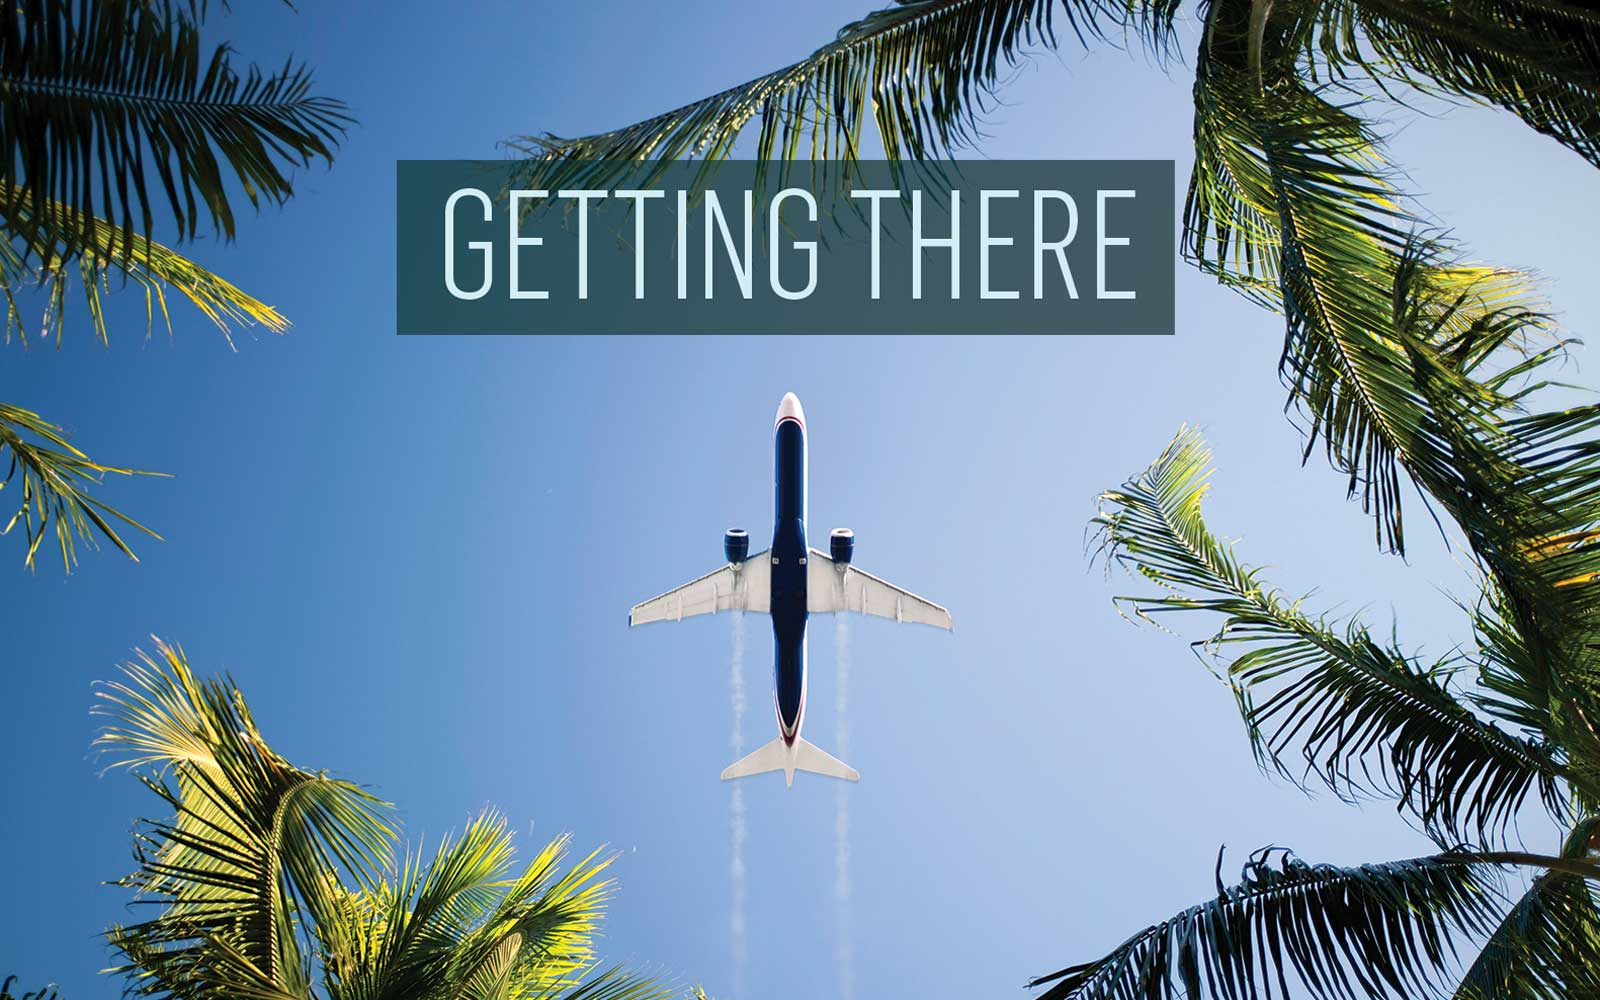 Last Minute Tips for Booking Travel